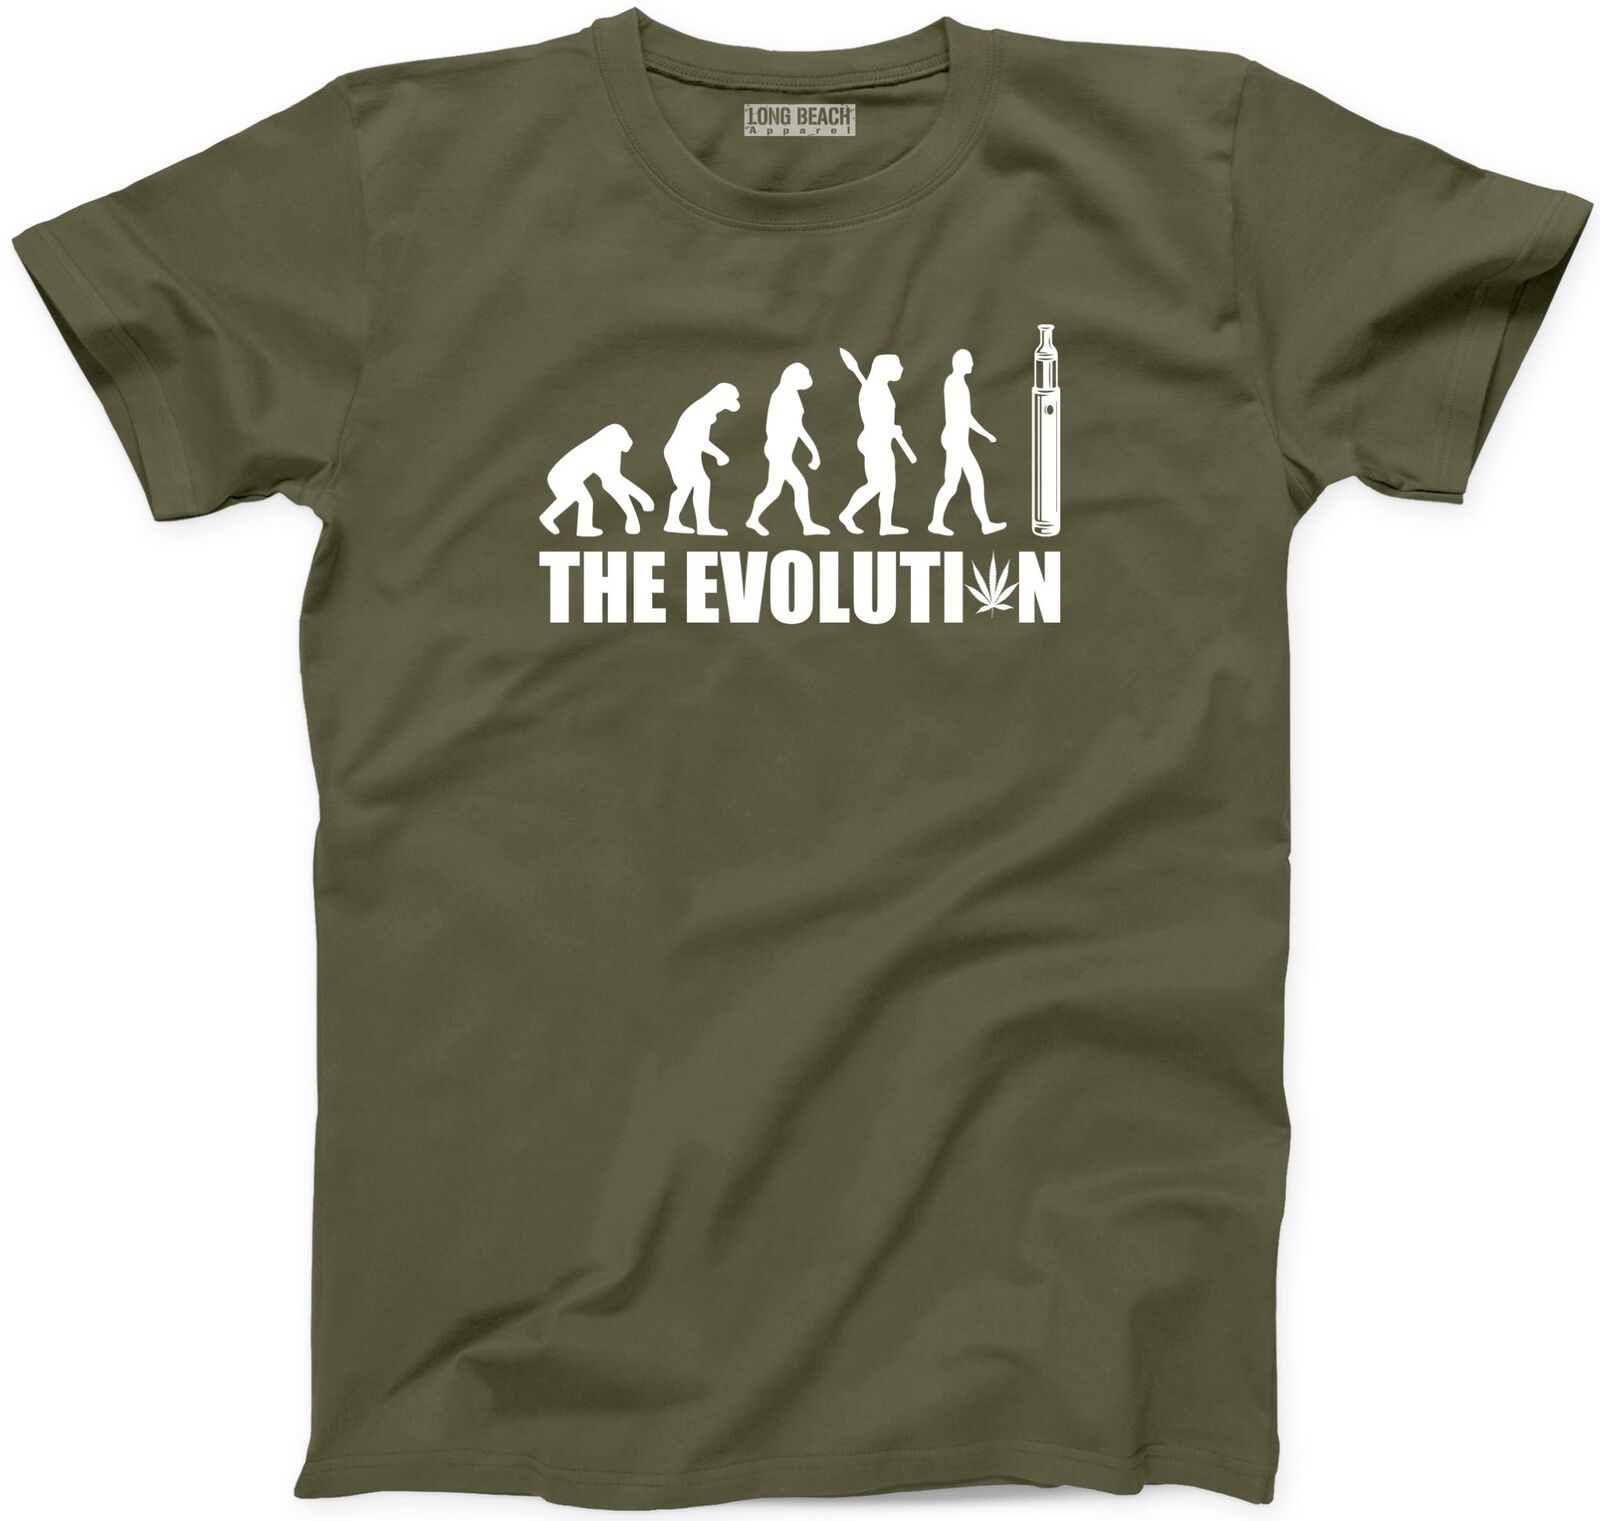 The Evolution Weed T-Shirt New Vape Medical Marijuana Funny Joint Smoke Tee 1